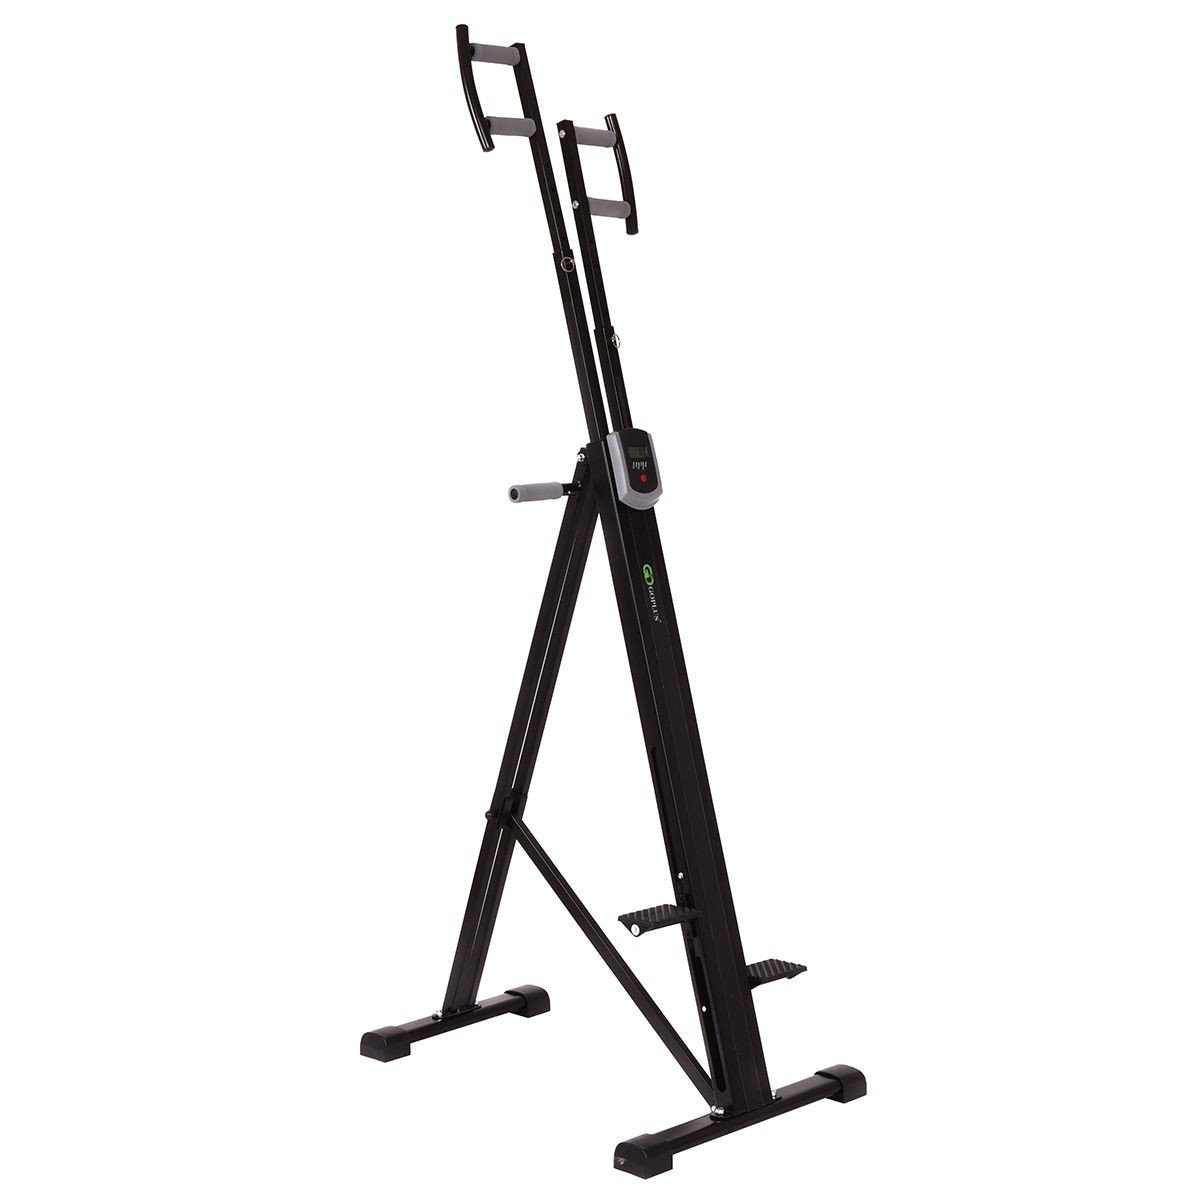 Foldable Vertical Climber Machine Exercise